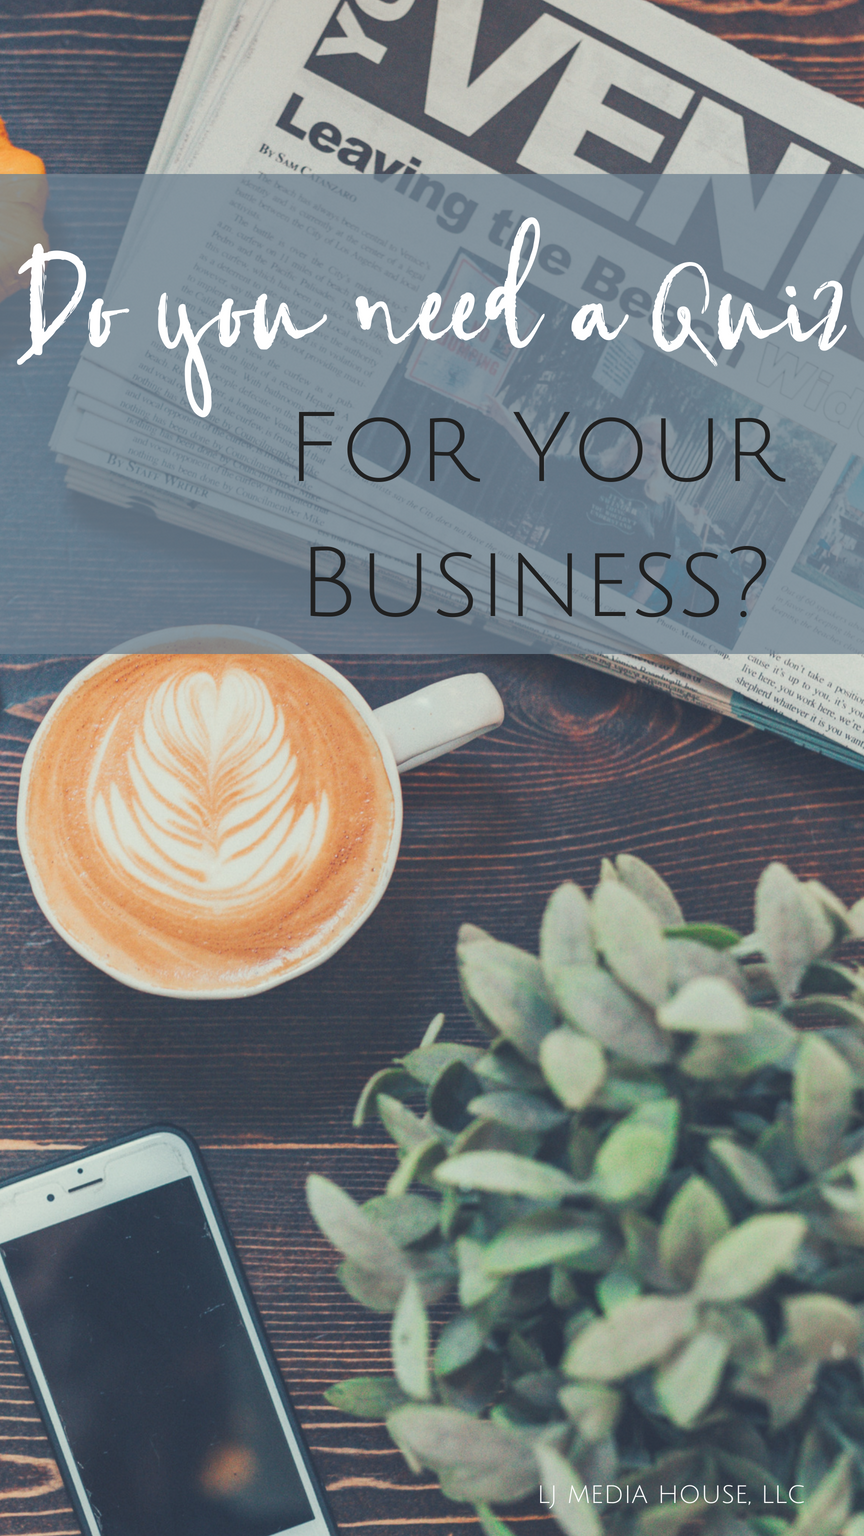 Do you need a quiz for your business?